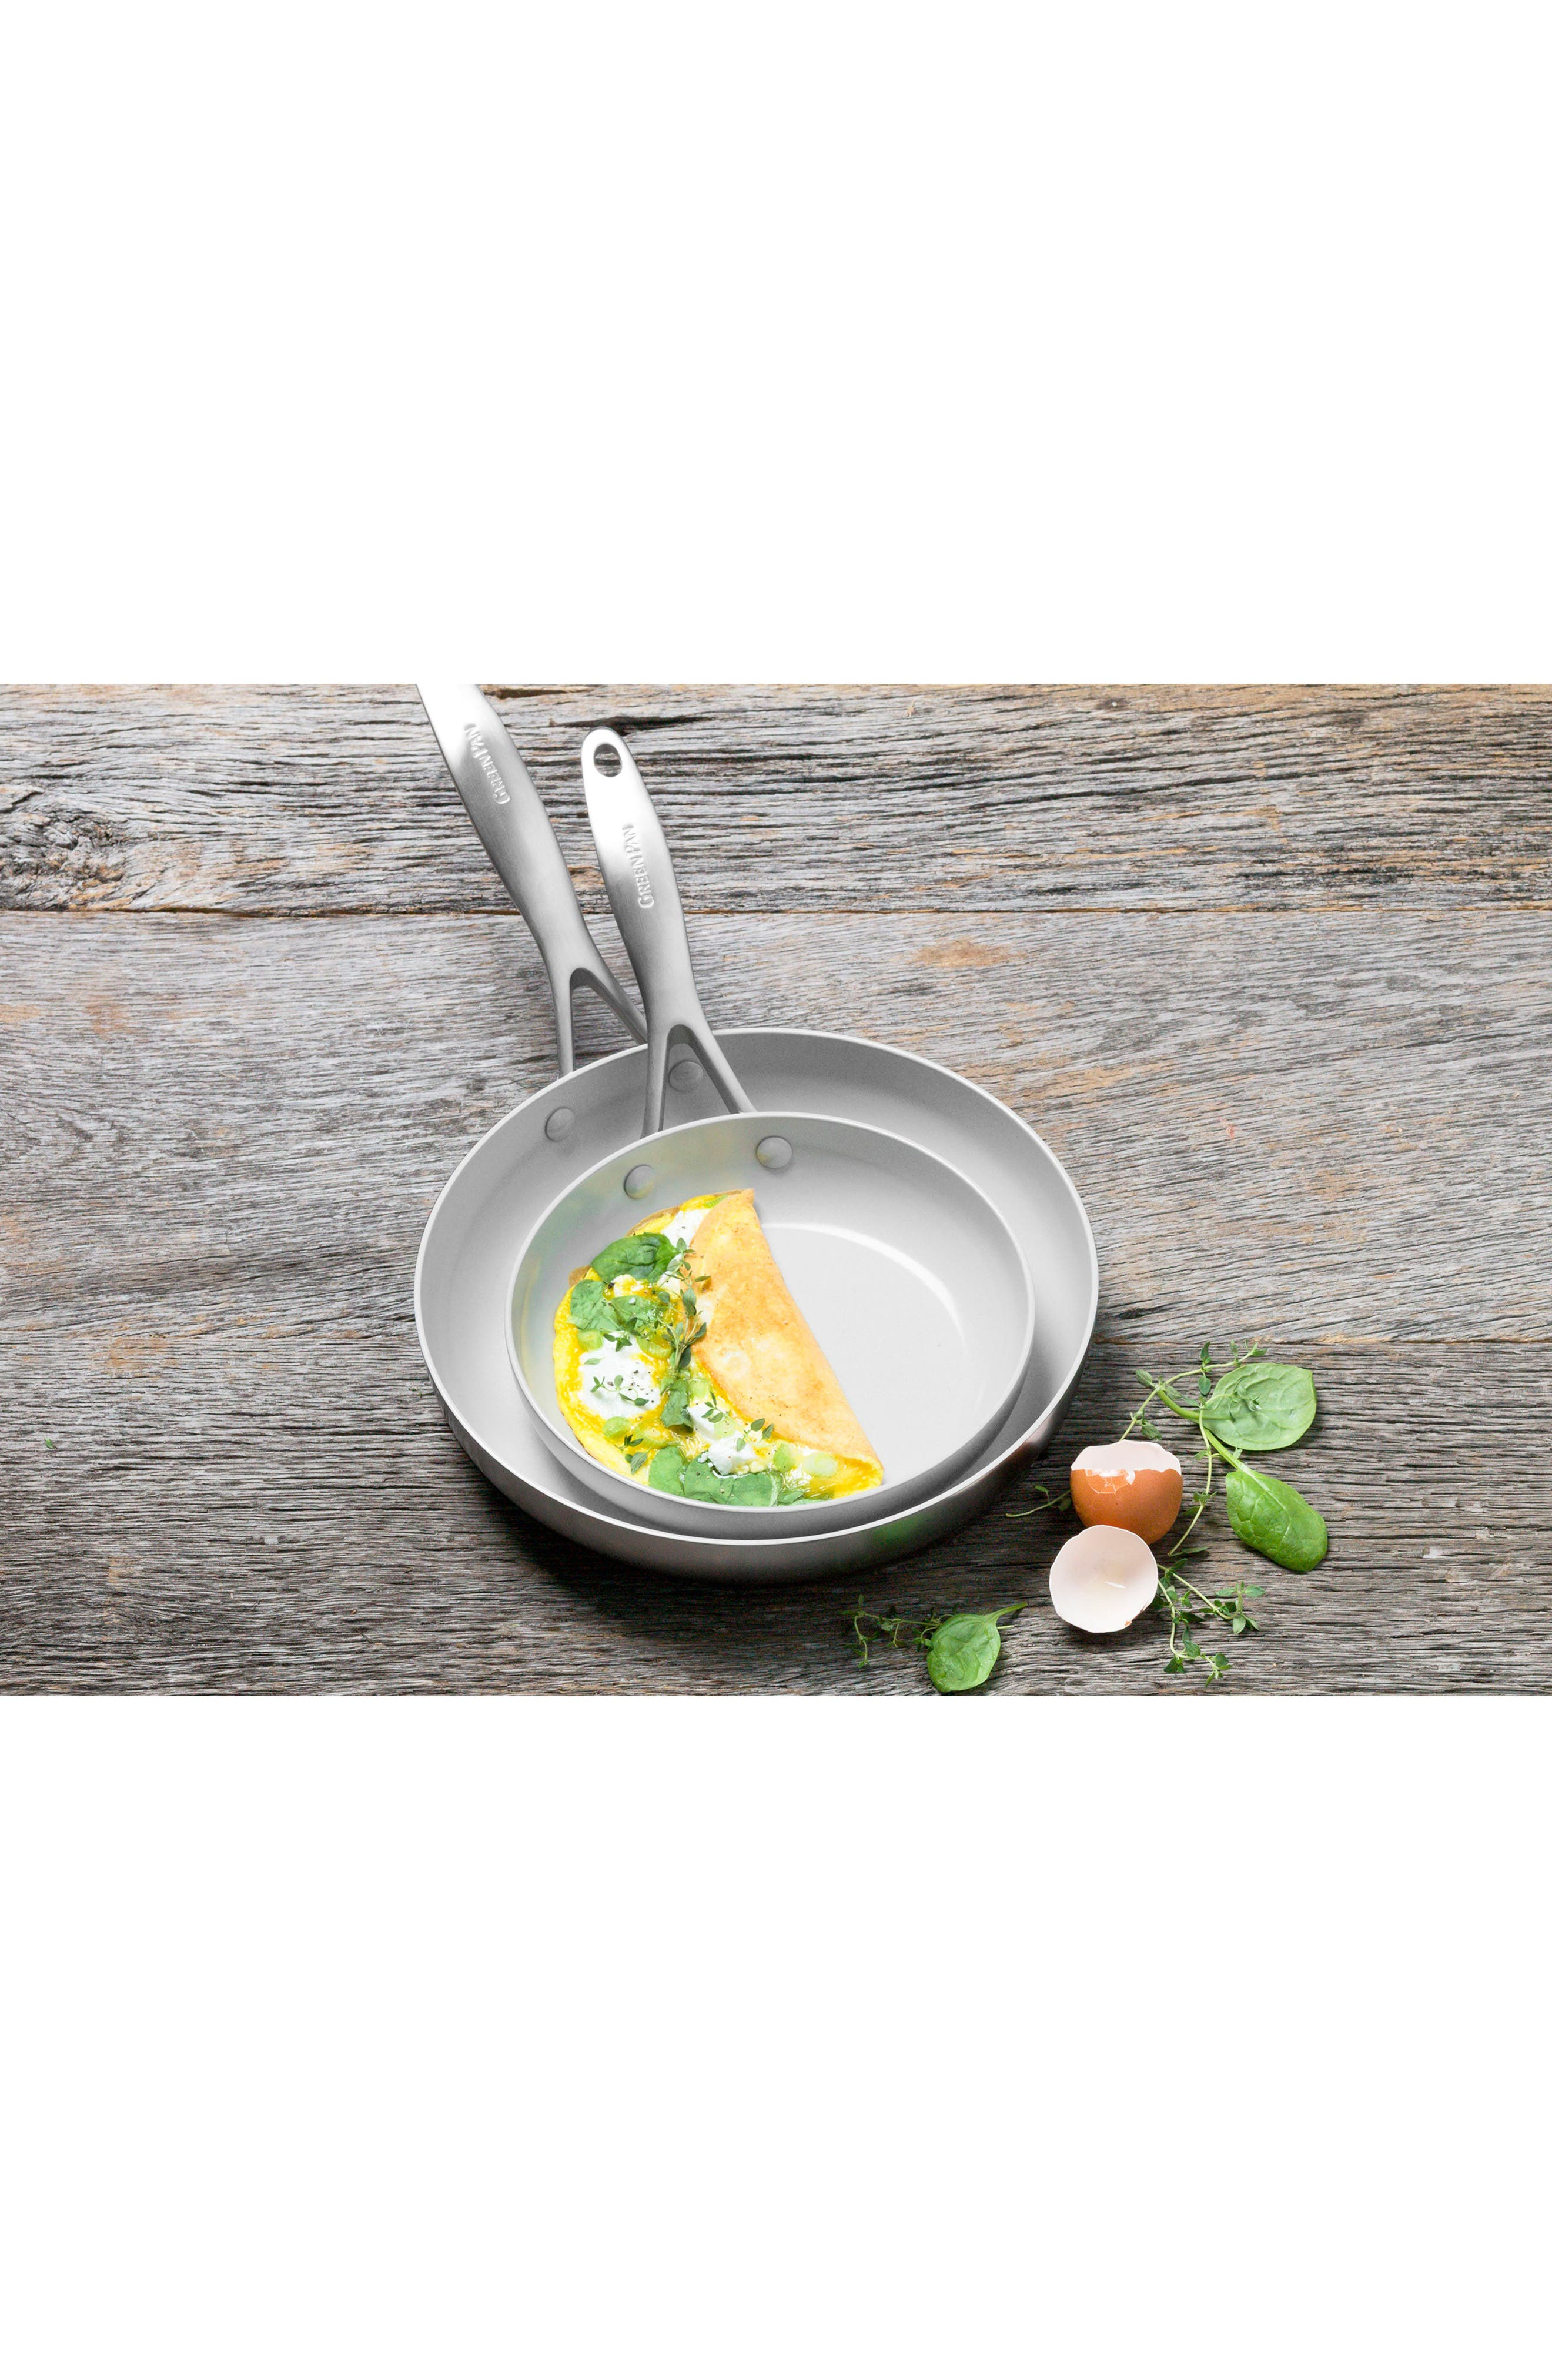 Venice Pro 8-Inch & 10-Inch Multilayer Stainless Steel Ceramic Nonstick Frying Pan Set,                             Alternate thumbnail 6, color,                             040